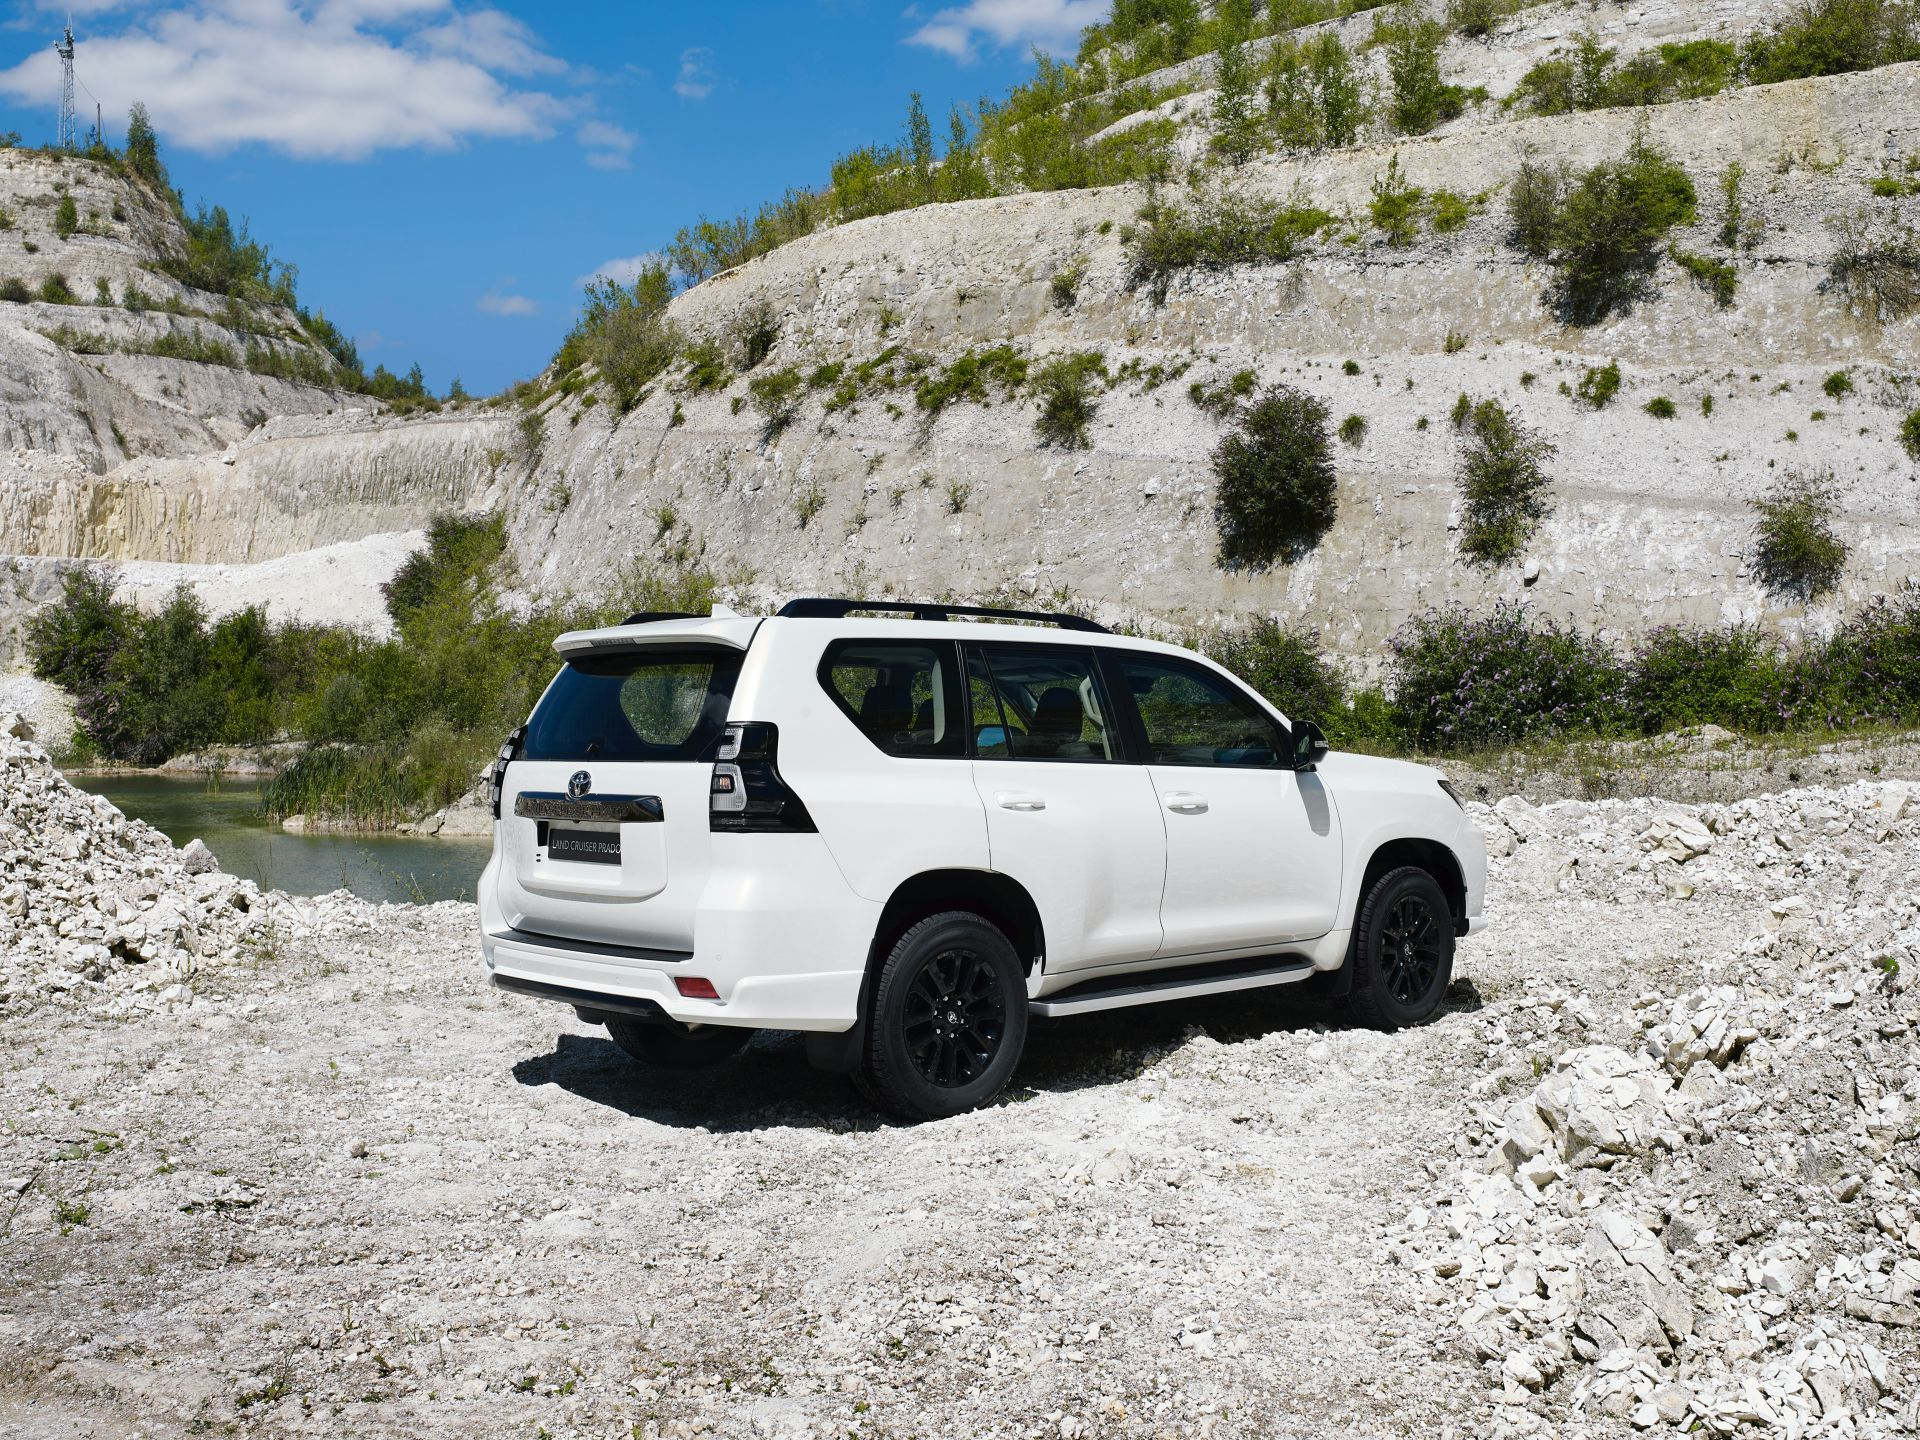 Toyota-Land-Cruiser-euro-2021-65